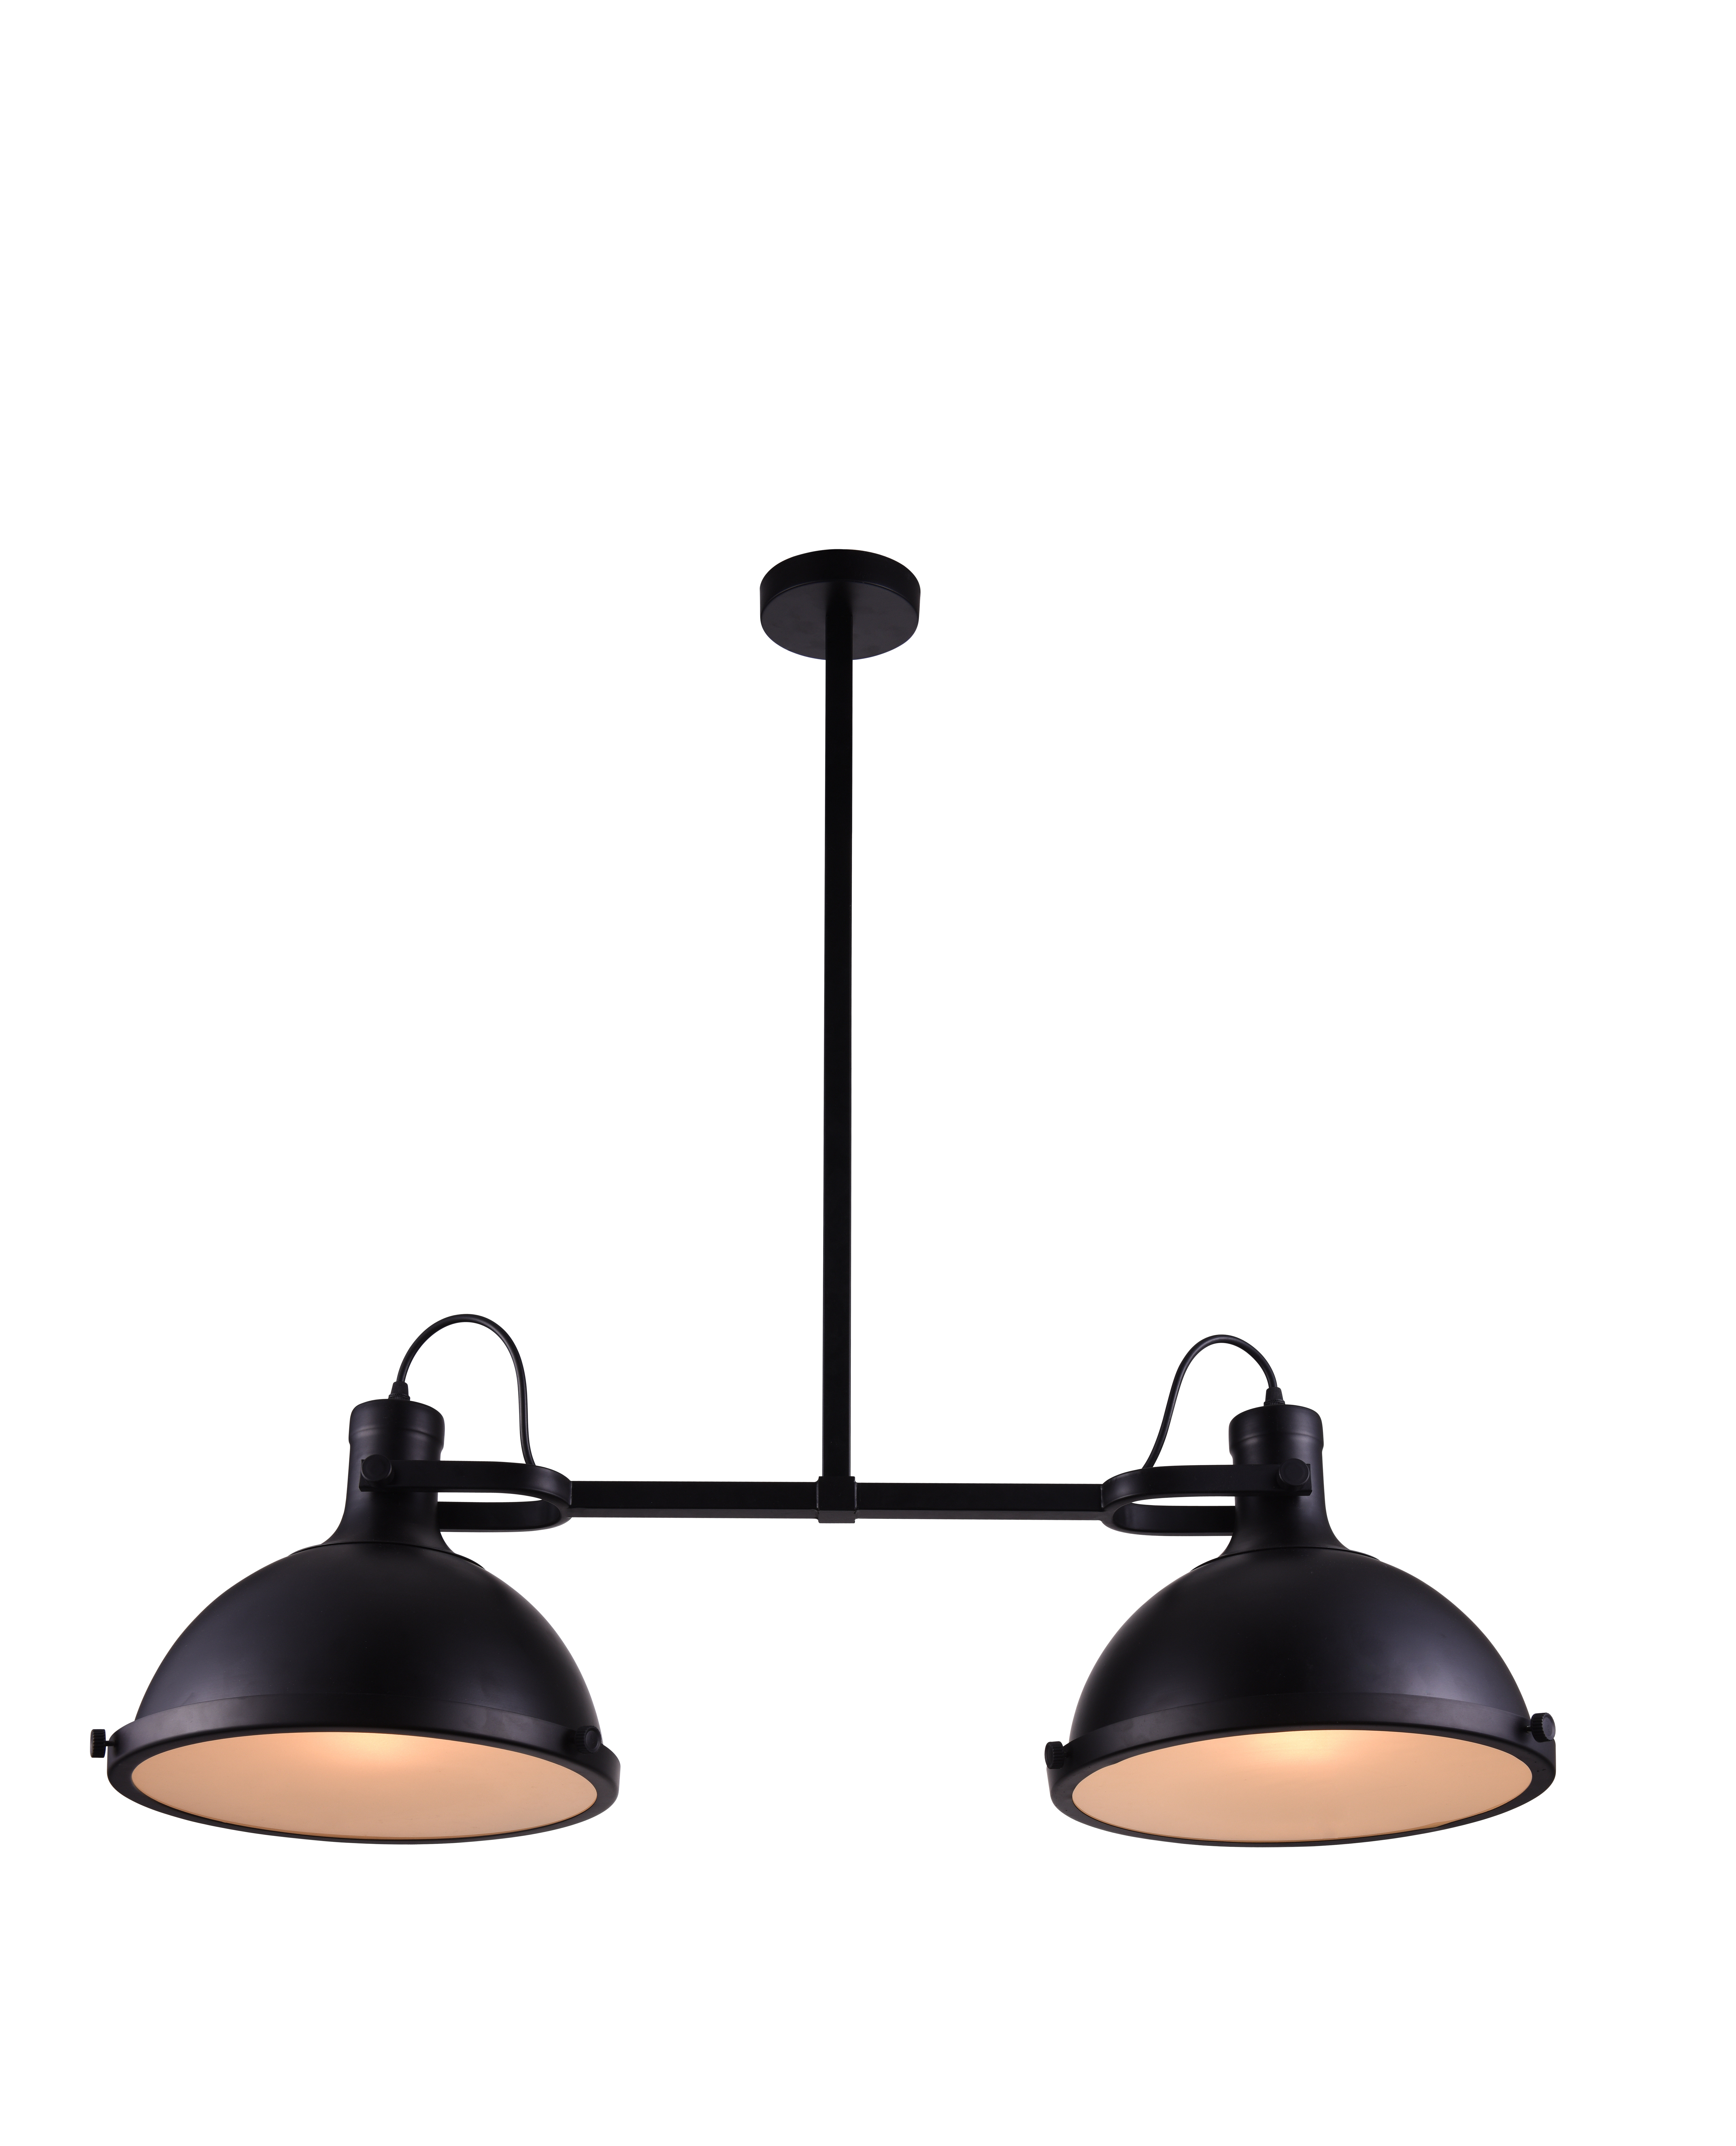 Ariel 2 Light Kitchen Island Dome Pendants Throughout Most Recently Released Modern 2 Light Kitchen Island Pendant Lighting (View 7 of 20)